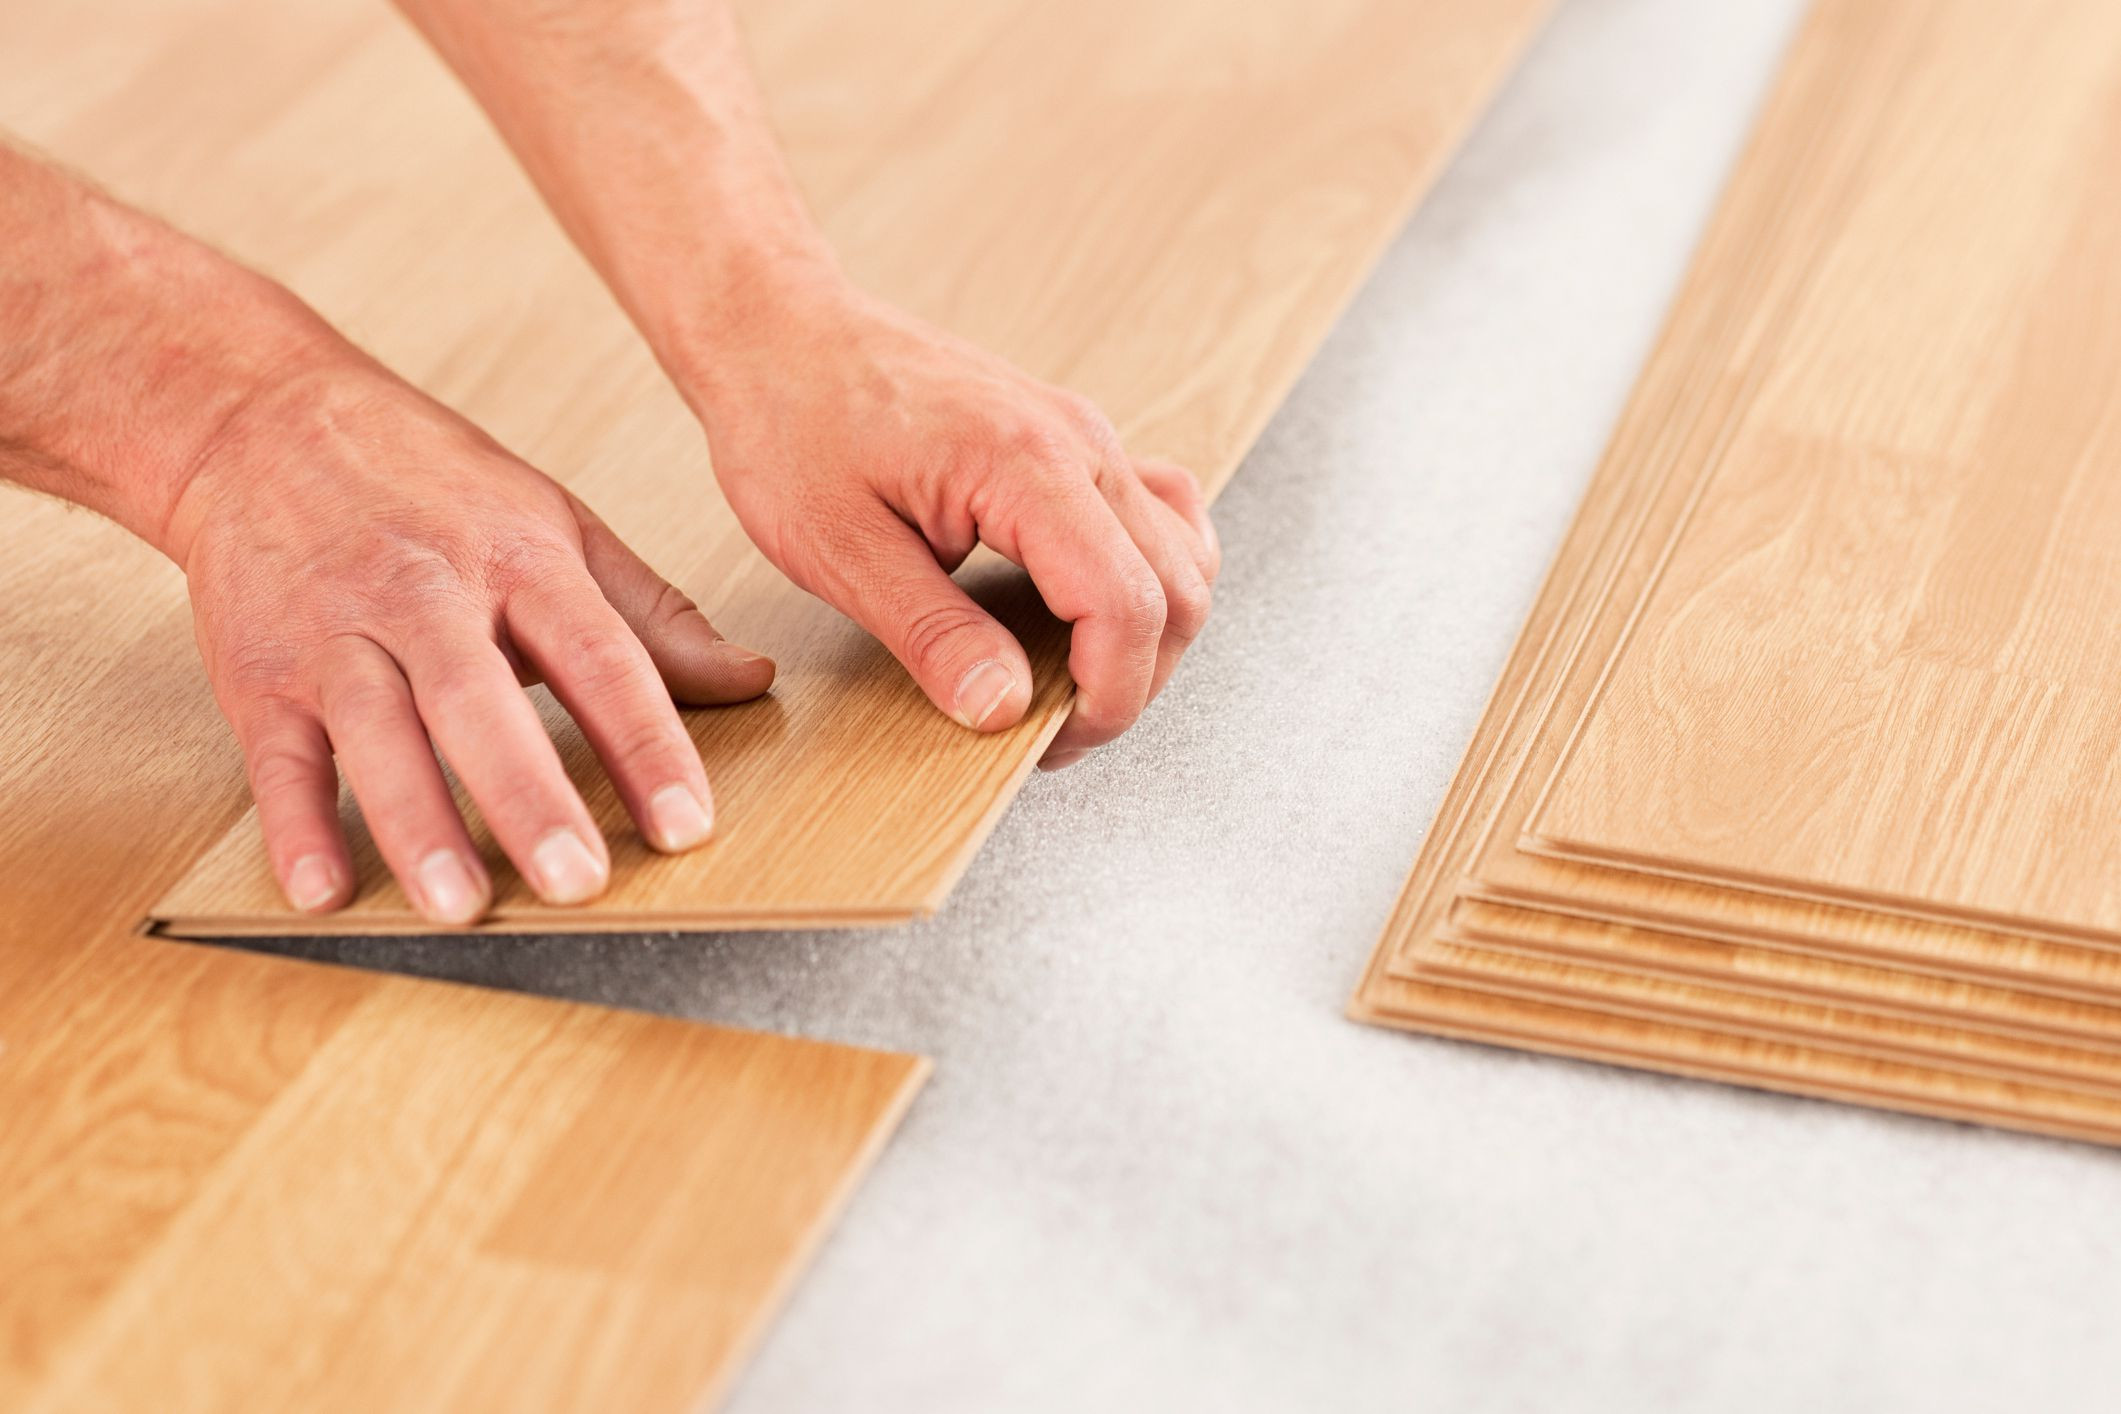 laminate floor or hardwood floor of laminate underlayment pros and cons within laminate floor install gettyimages 154961561 588816495f9b58bdb3da1a02